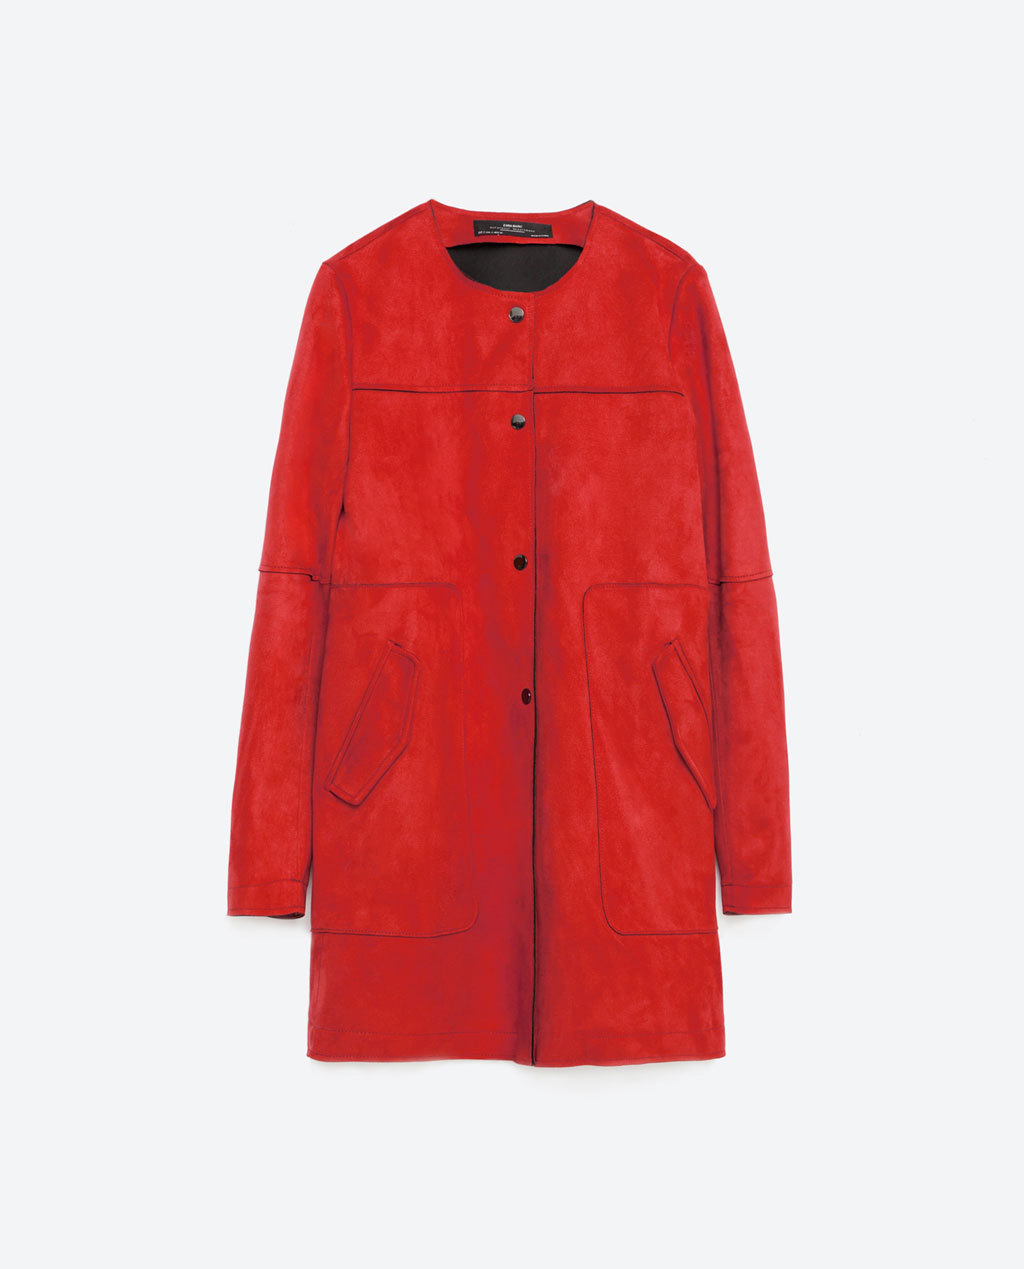 Red Suede Effect Coat - pattern: plain; collar: round collar/collarless; style: single breasted; length: mid thigh; predominant colour: true red; occasions: casual, creative work; fit: straight cut (boxy); fibres: polyester/polyamide - 100%; sleeve length: long sleeve; sleeve style: standard; collar break: high; pattern type: fabric; texture group: suede; season: s/s 2016; wardrobe: highlight